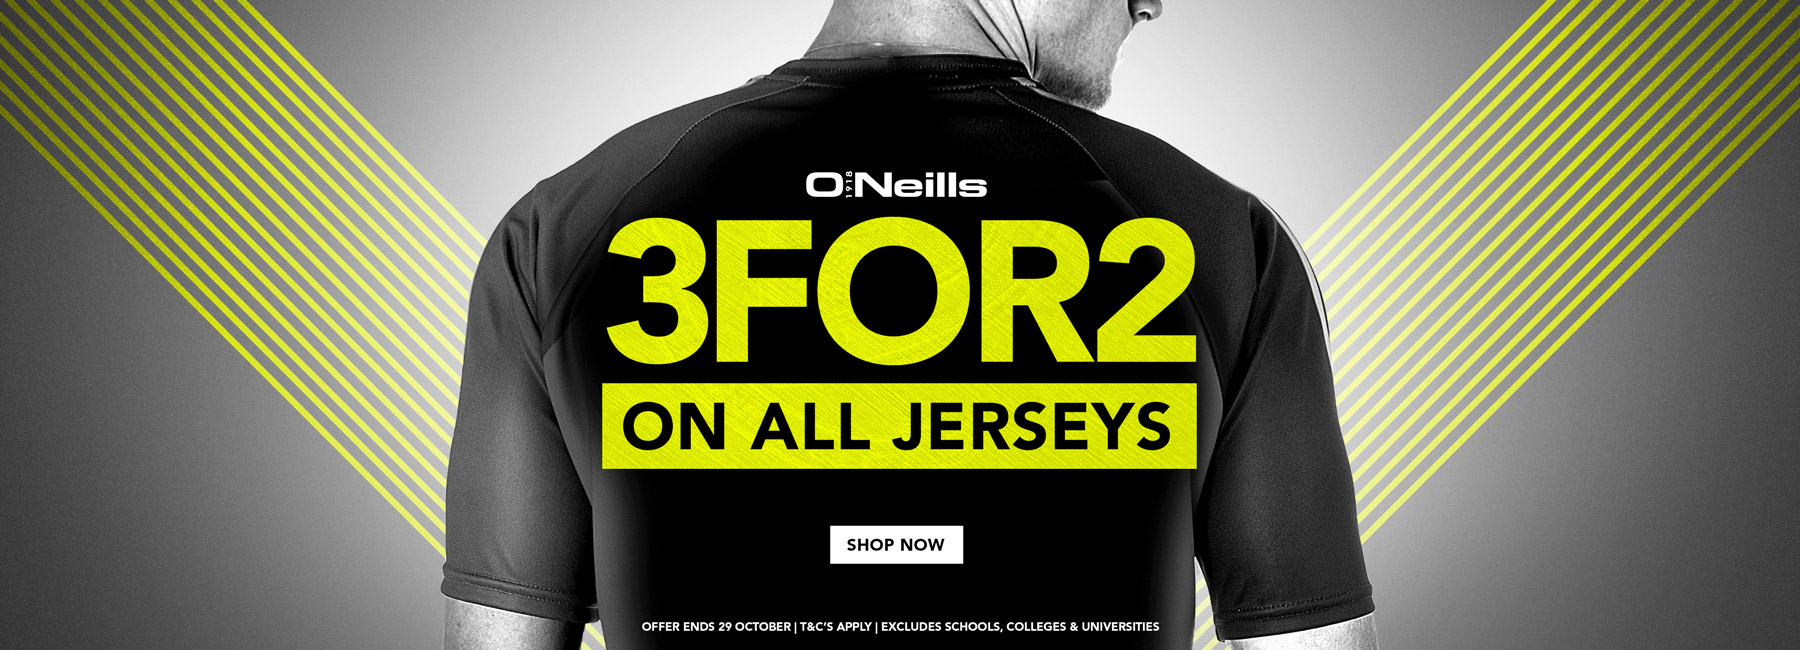 3 for 2 Jerseys